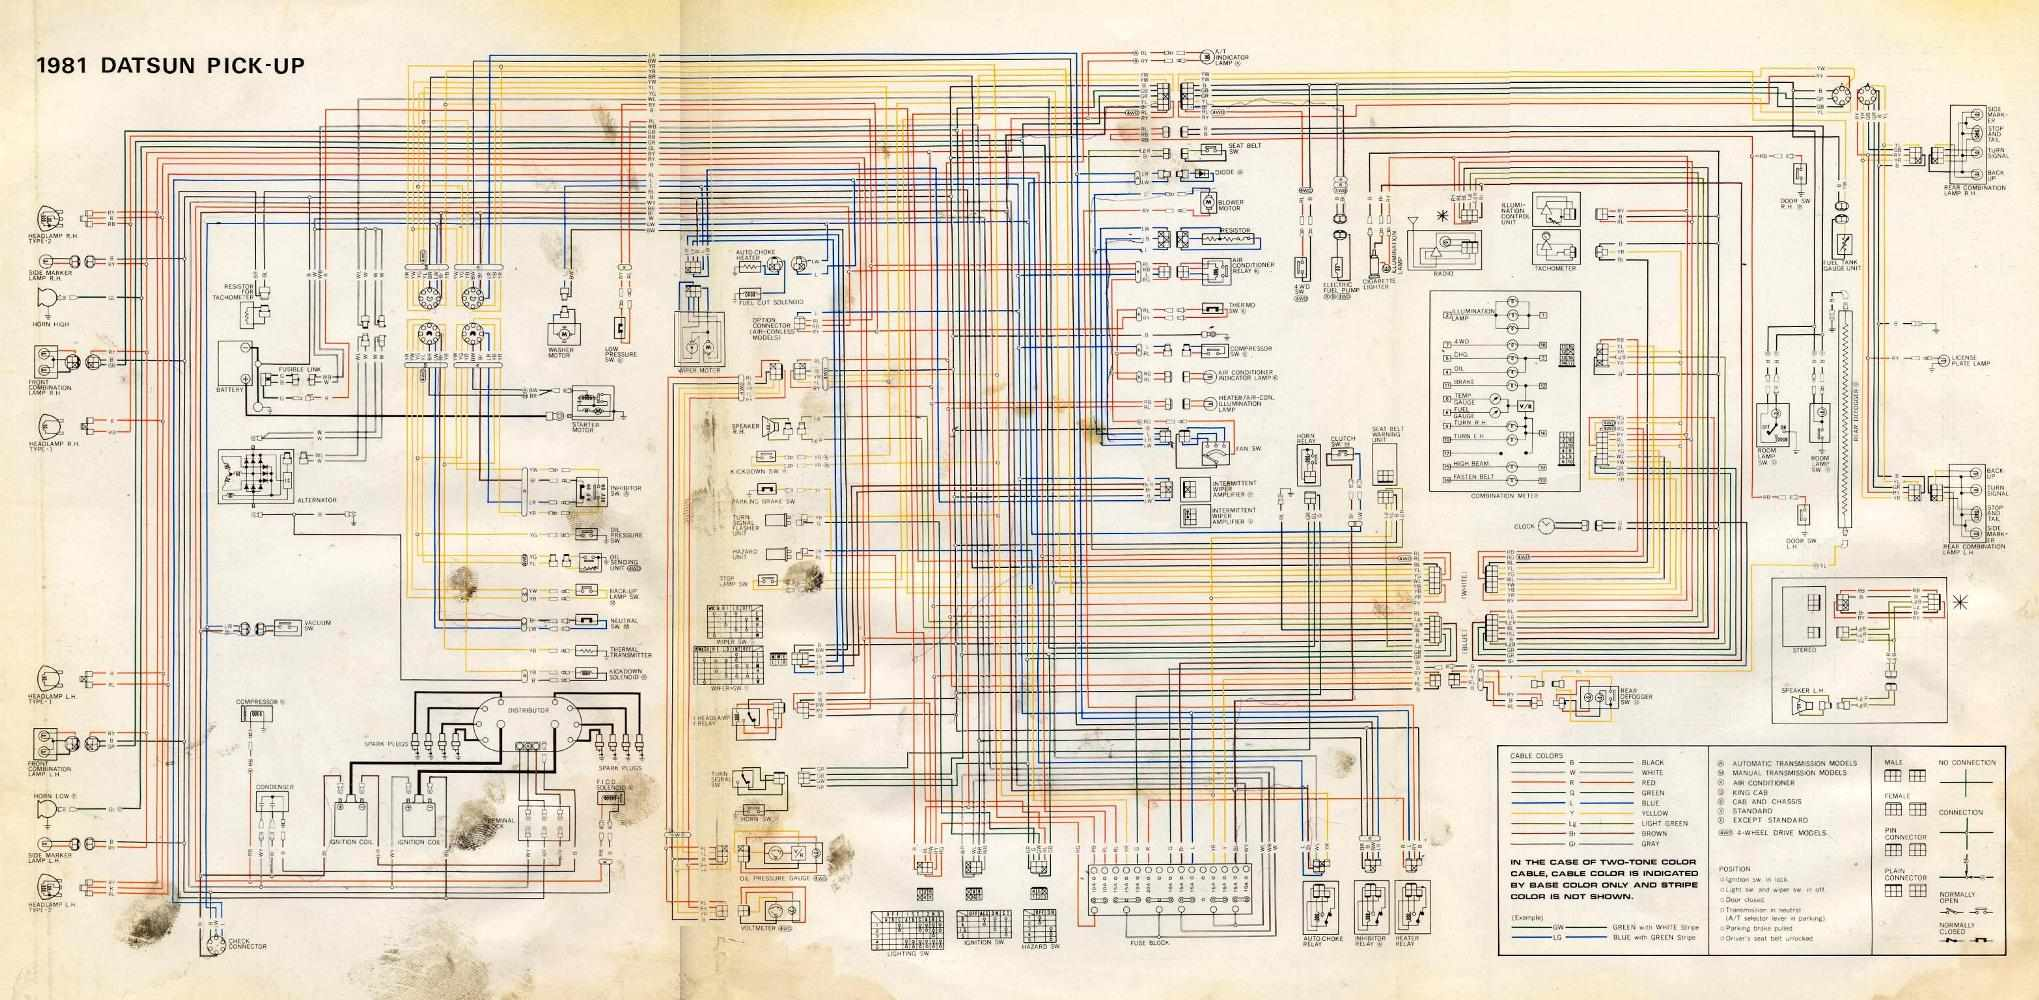 1978 Dodge Truck Wiring Diagram - 4k Wiki Wallpapers 2018